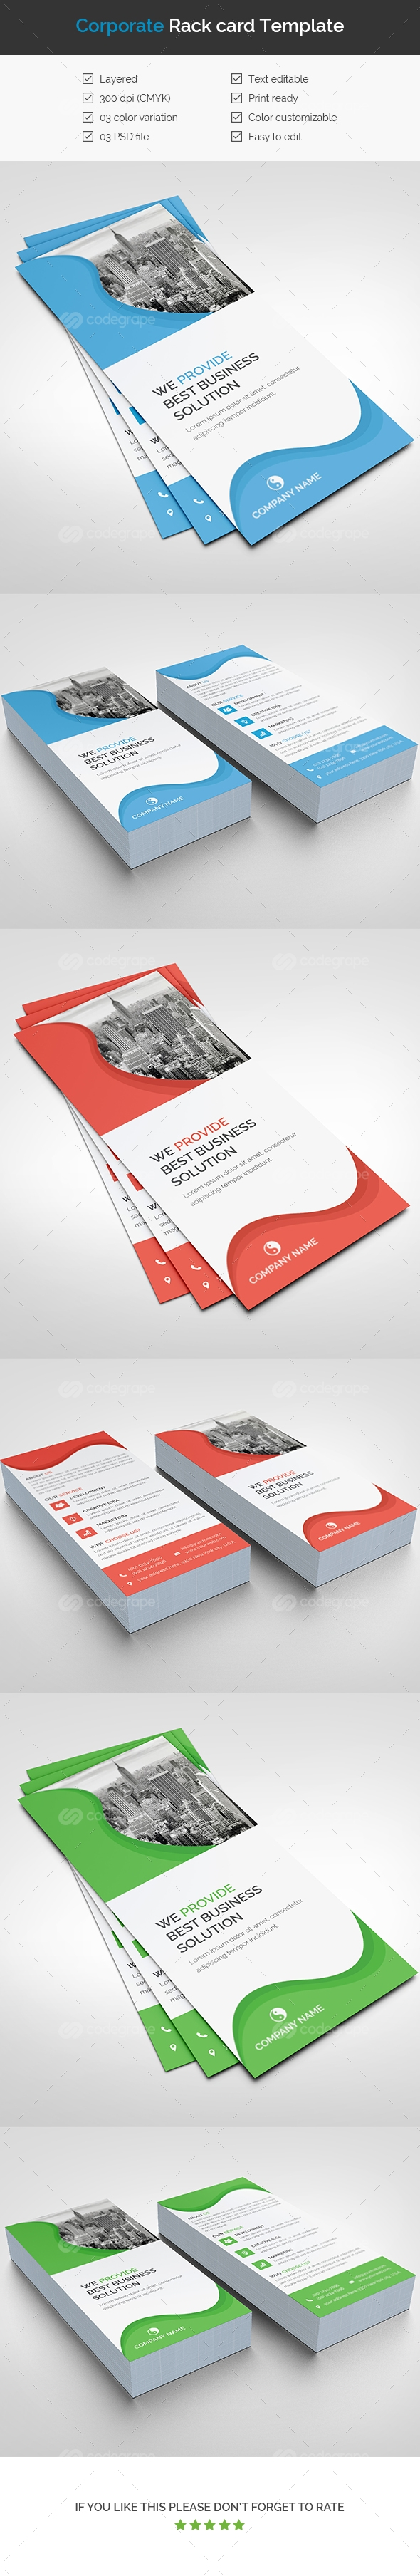 Corporate Rack Card Template